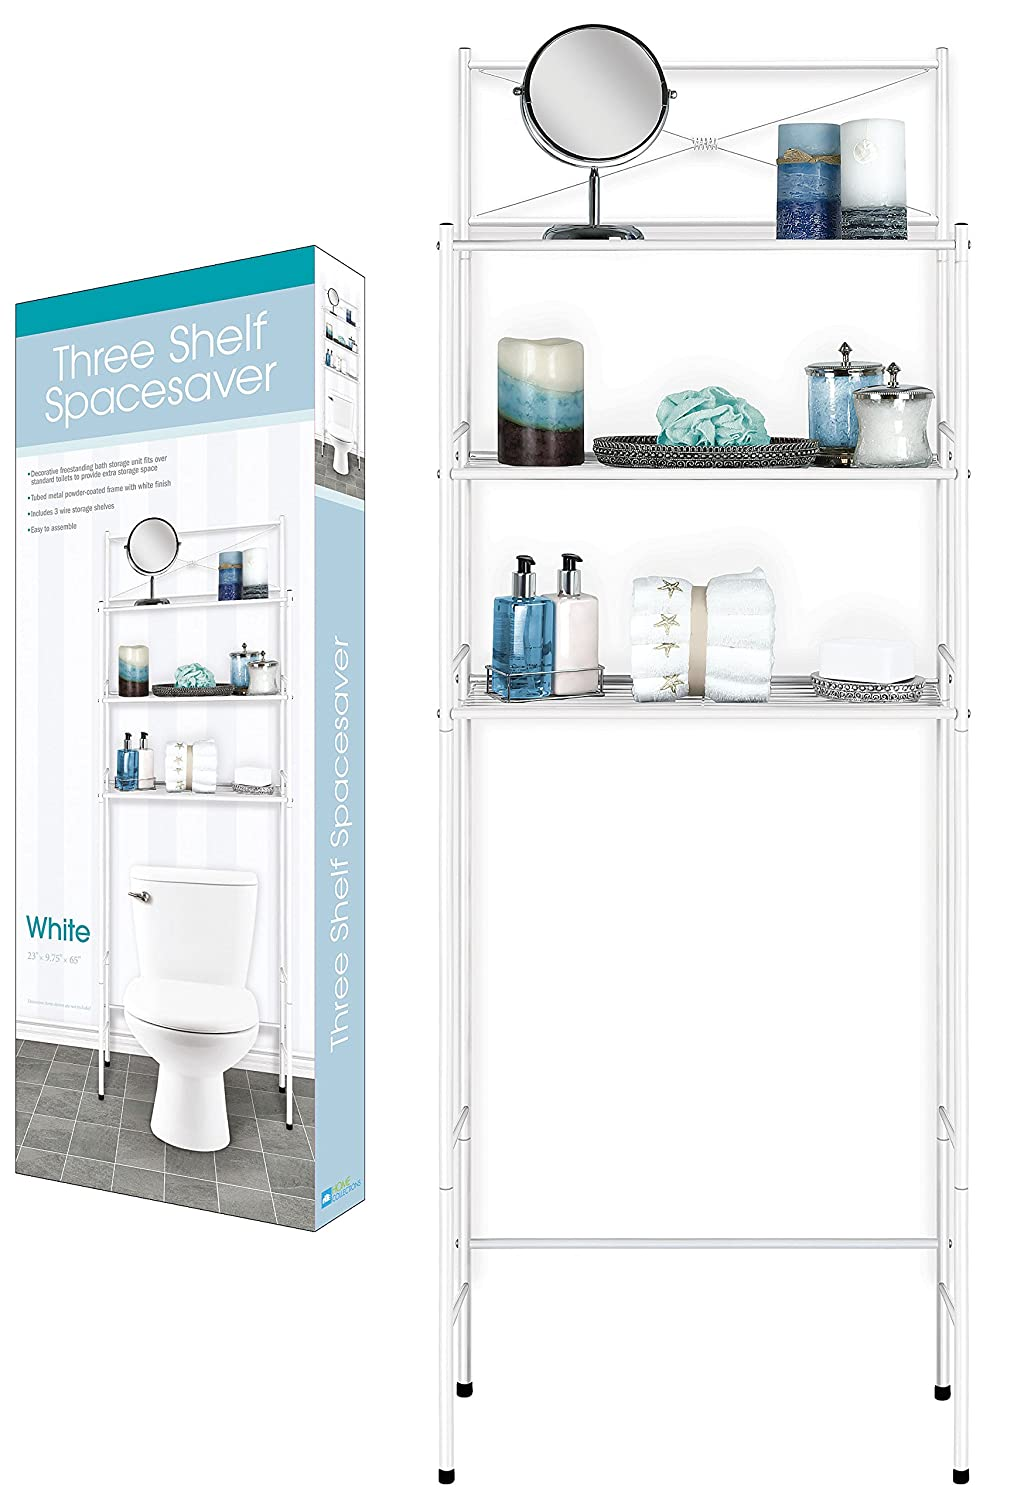 DINY Home Collections 3 Shelf Over The Toilet Spacesaver Easy to Assemble (Black) Dependable Industries inc